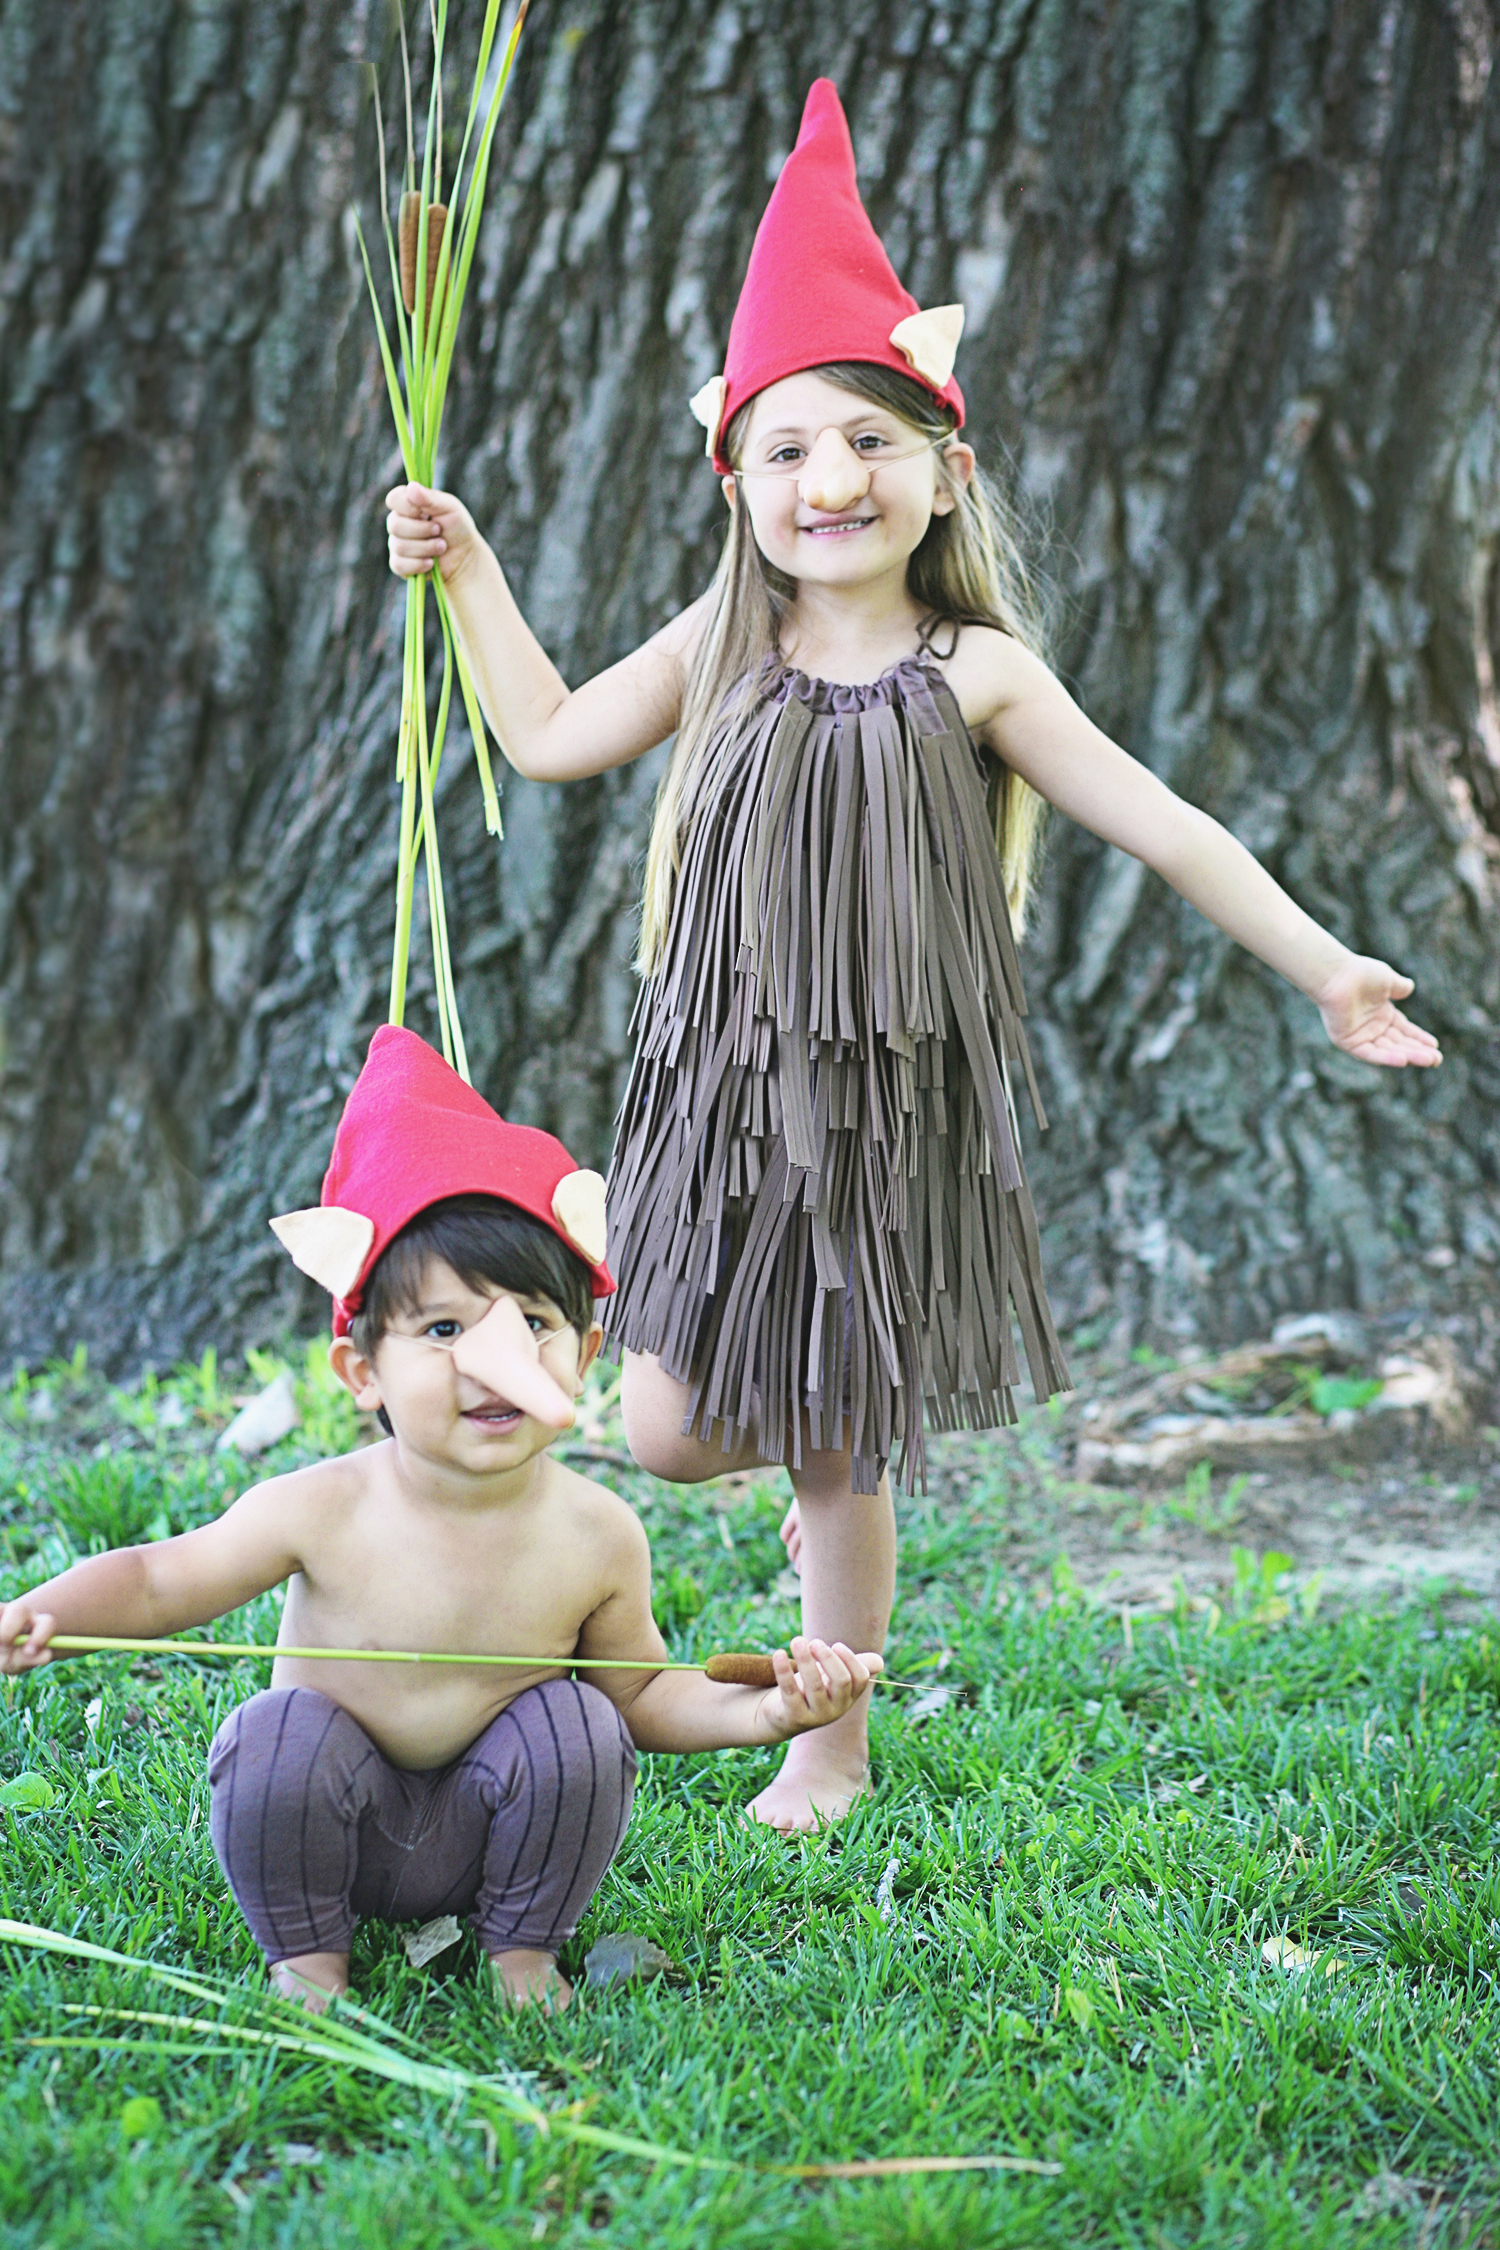 Halloween Costumes: Wood Imp boy and girl to go with the book Halloween Good Night by Rebecca Grabill!